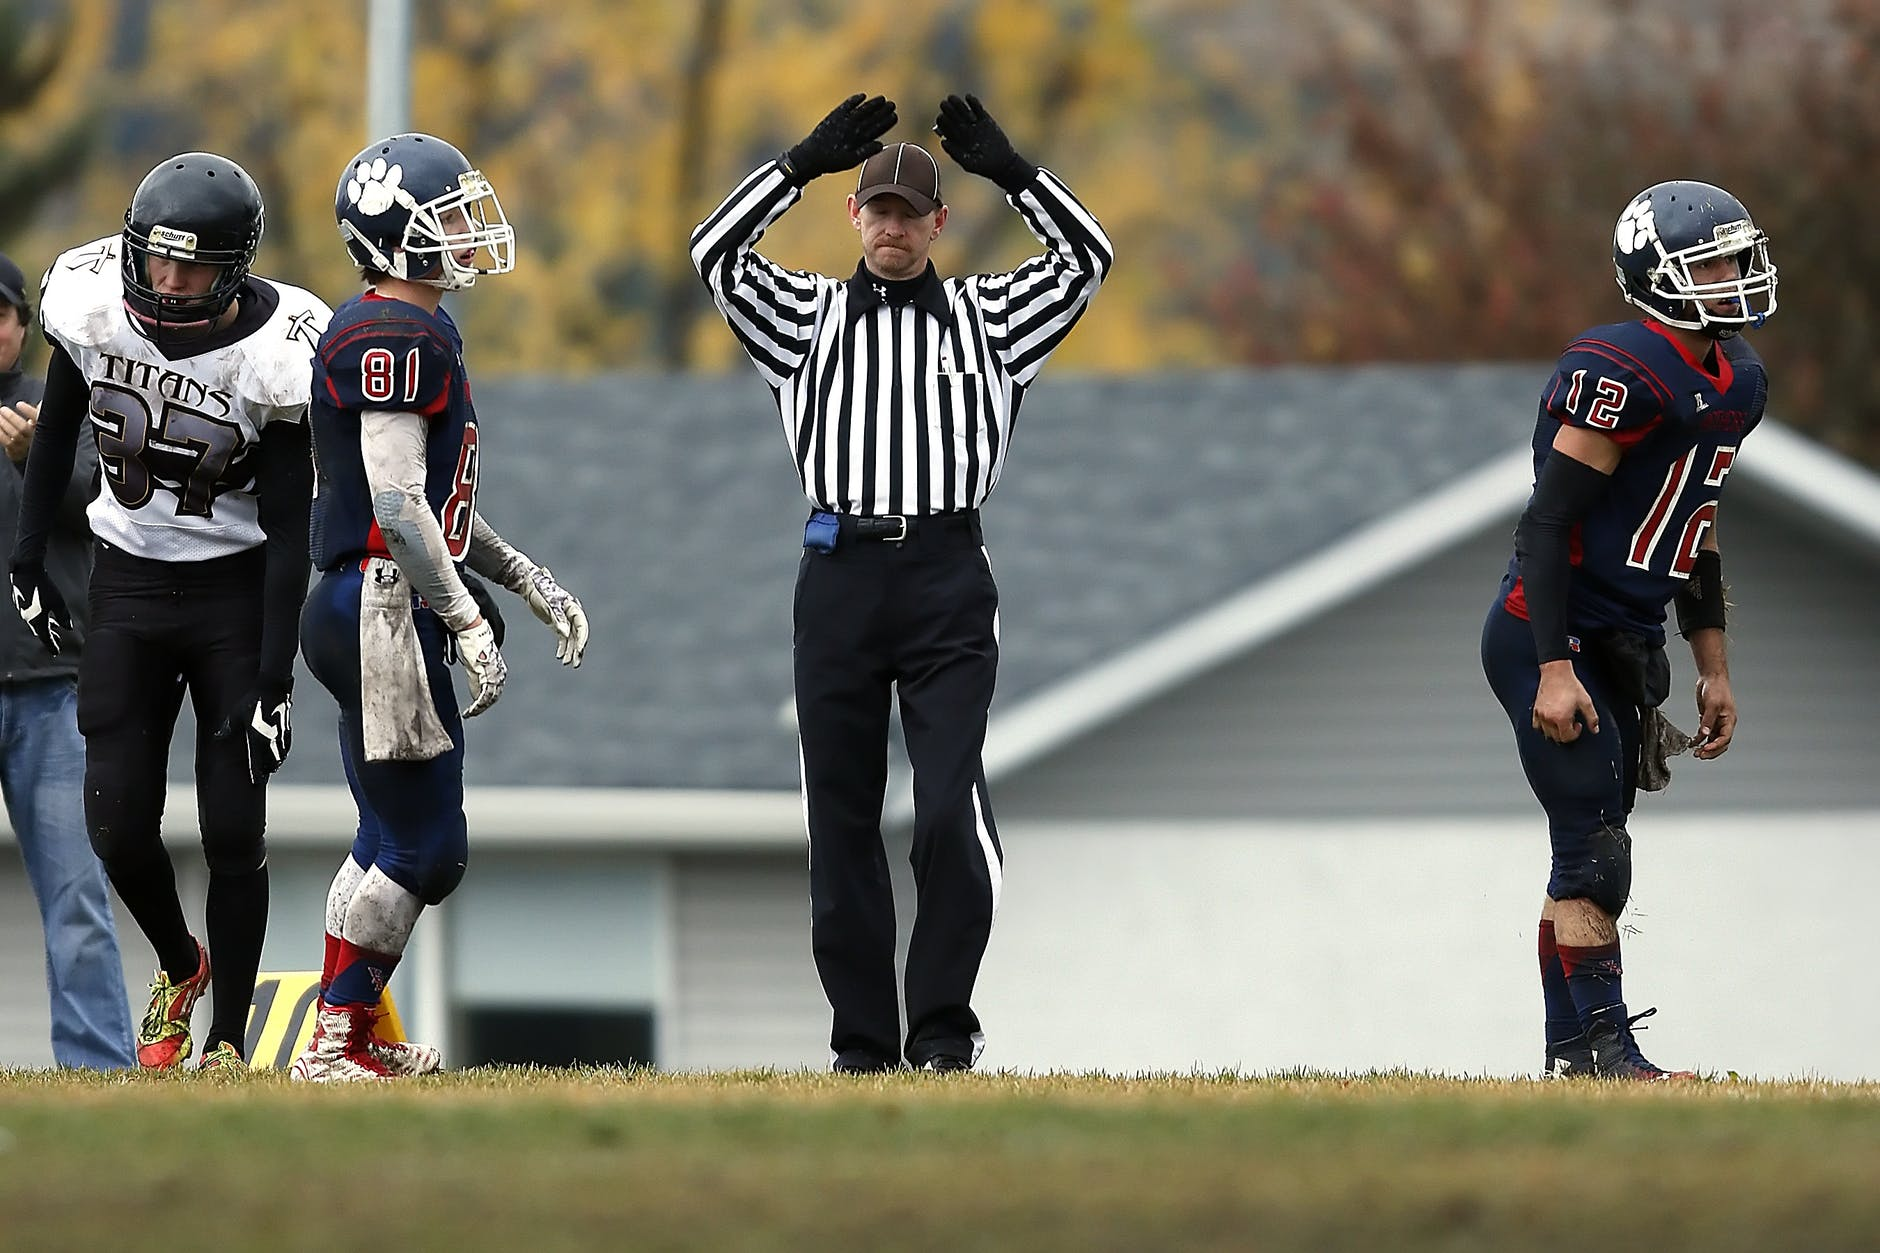 American football referee signaling time out